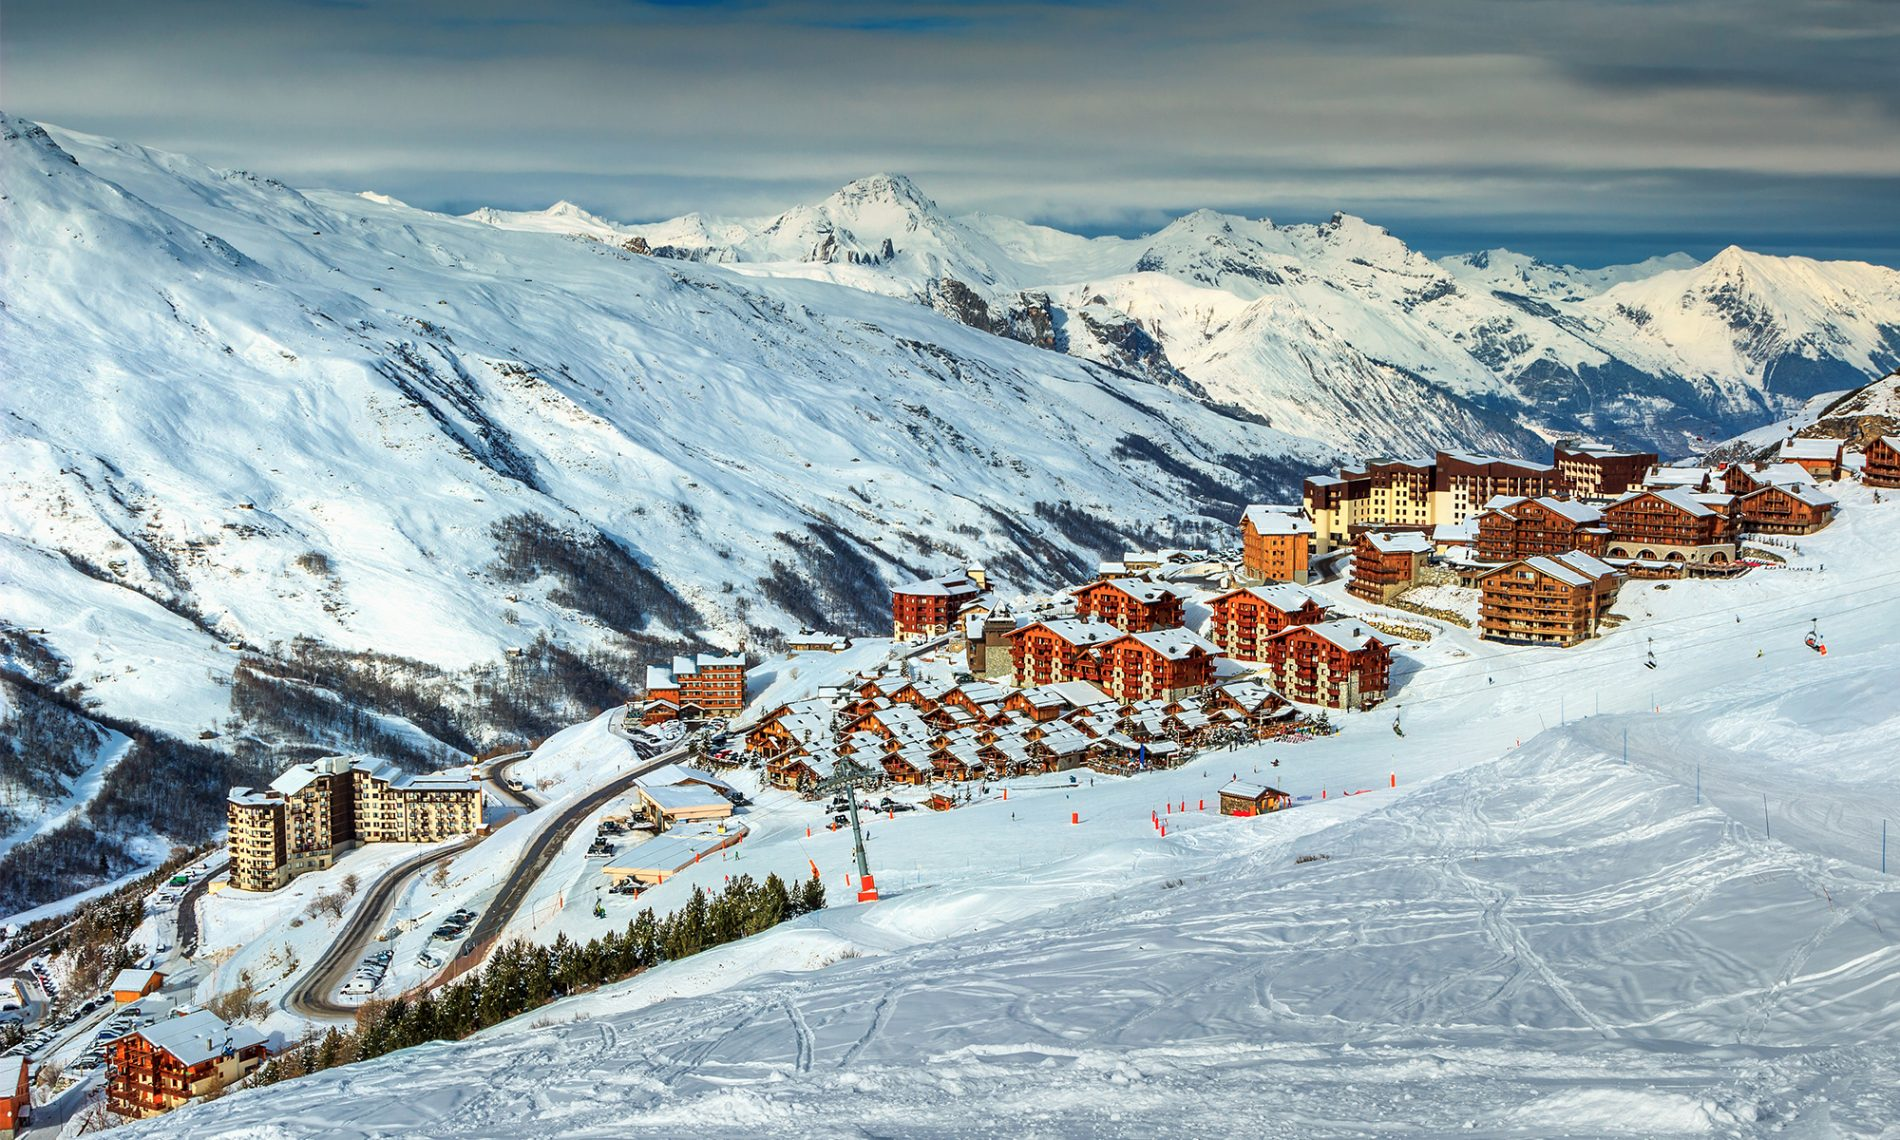 Les 3 Vallées in France. The best ranking resort in the My Vouchers code Best European Ski Resorts ranking. My Voucher Codes ranking of the Best European Ski Resorts 2018.